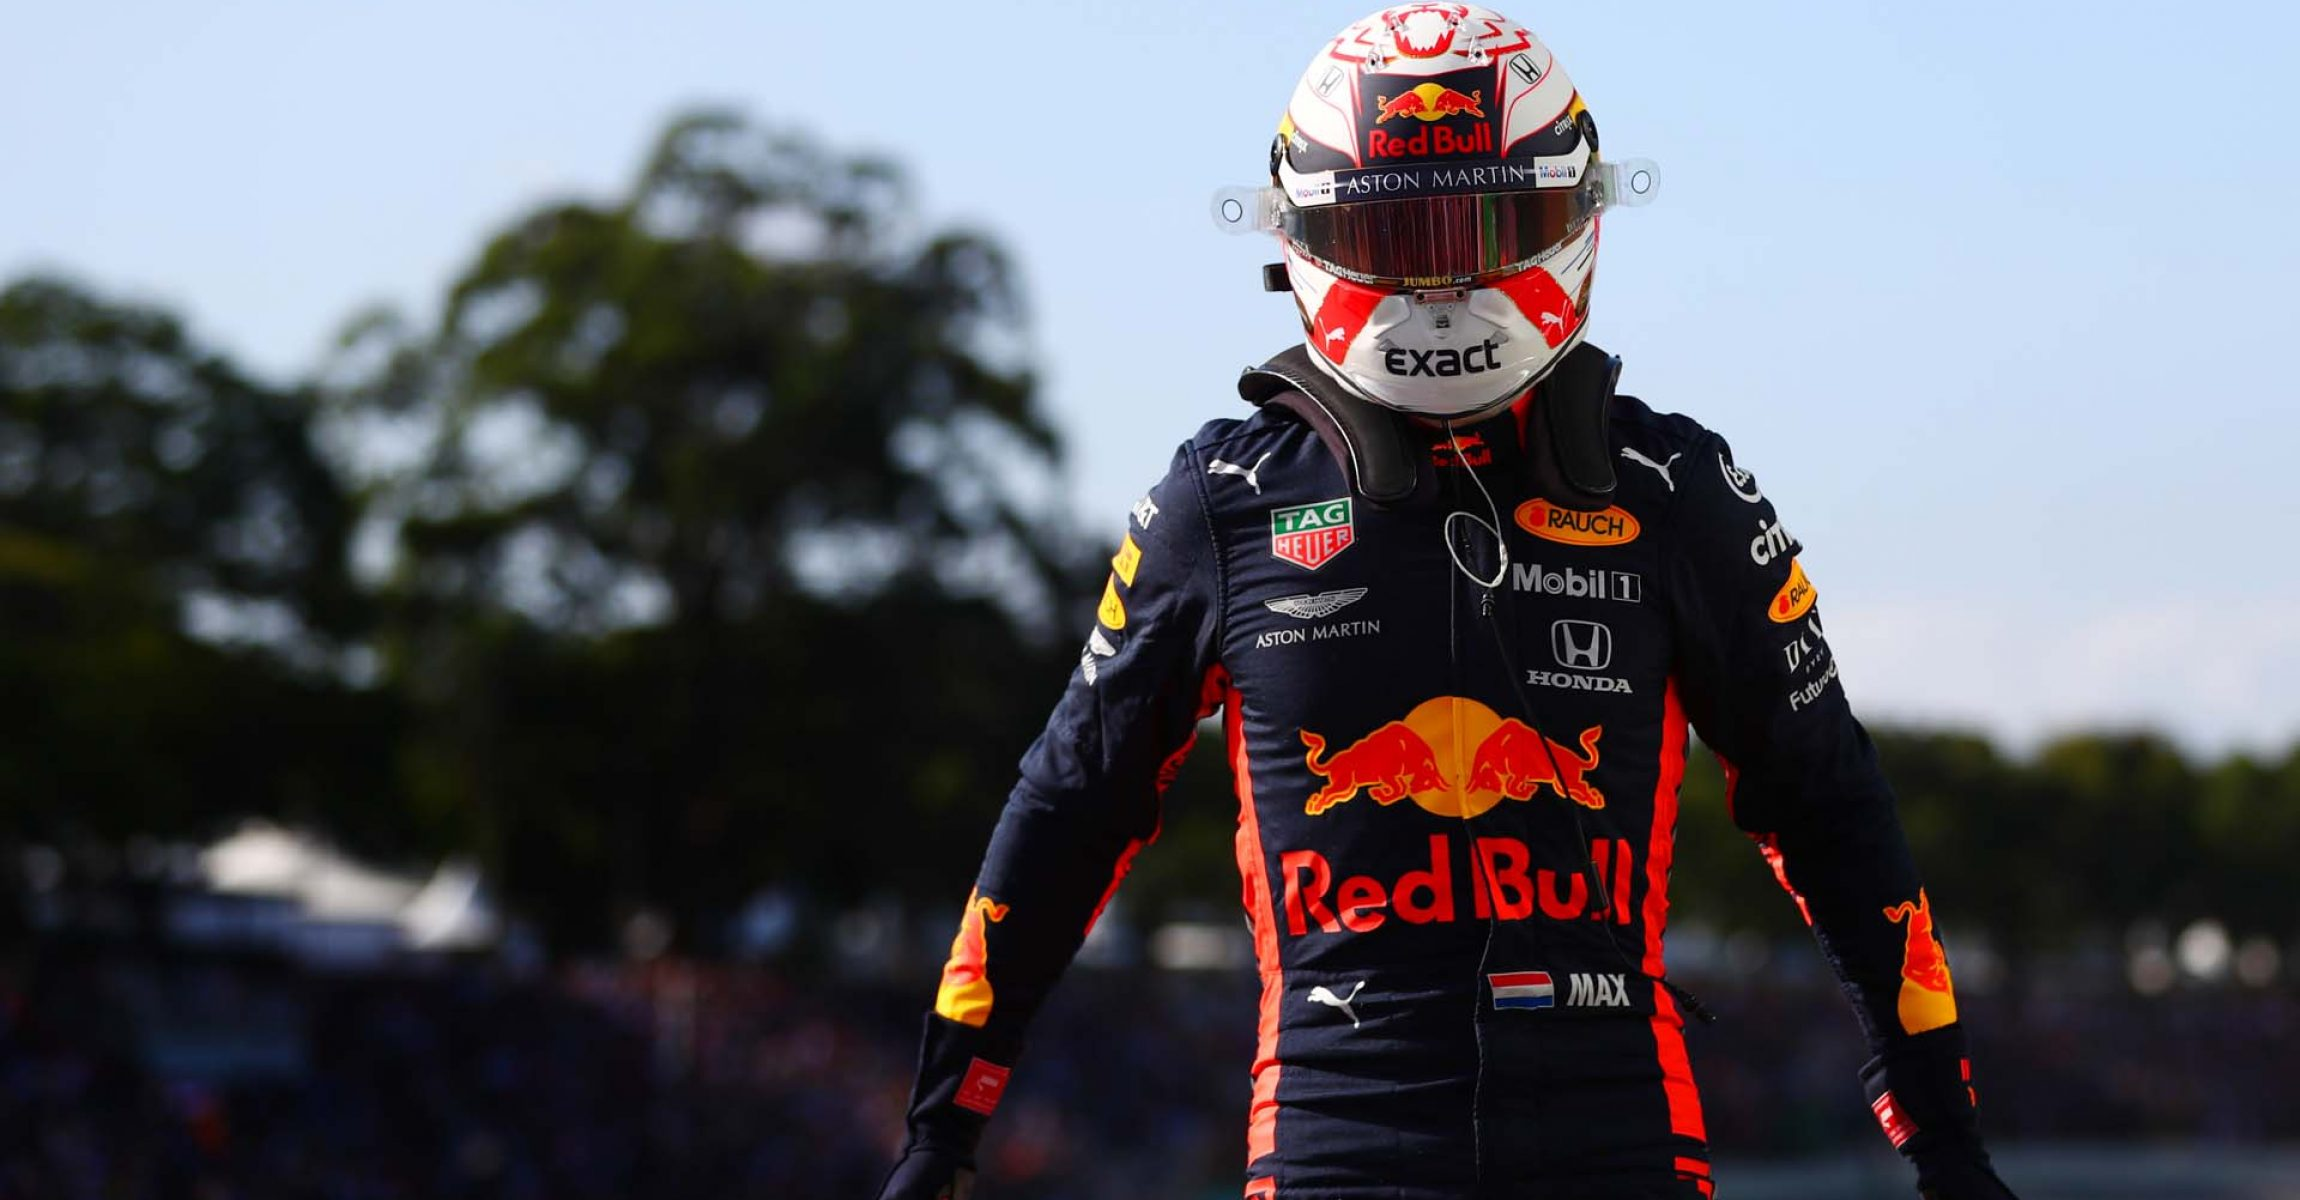 SAO PAULO, BRAZIL - NOVEMBER 16: Pole position qualifier Max Verstappen of Netherlands and Red Bull Racing celebrates in parc ferme during qualifying for the F1 Grand Prix of Brazil at Autodromo Jose Carlos Pace on November 16, 2019 in Sao Paulo, Brazil. (Photo by Dan Istitene/Getty Images) // Getty Images / Red Bull Content Pool // AP-2273CWMWN2111 // Usage for editorial use only //